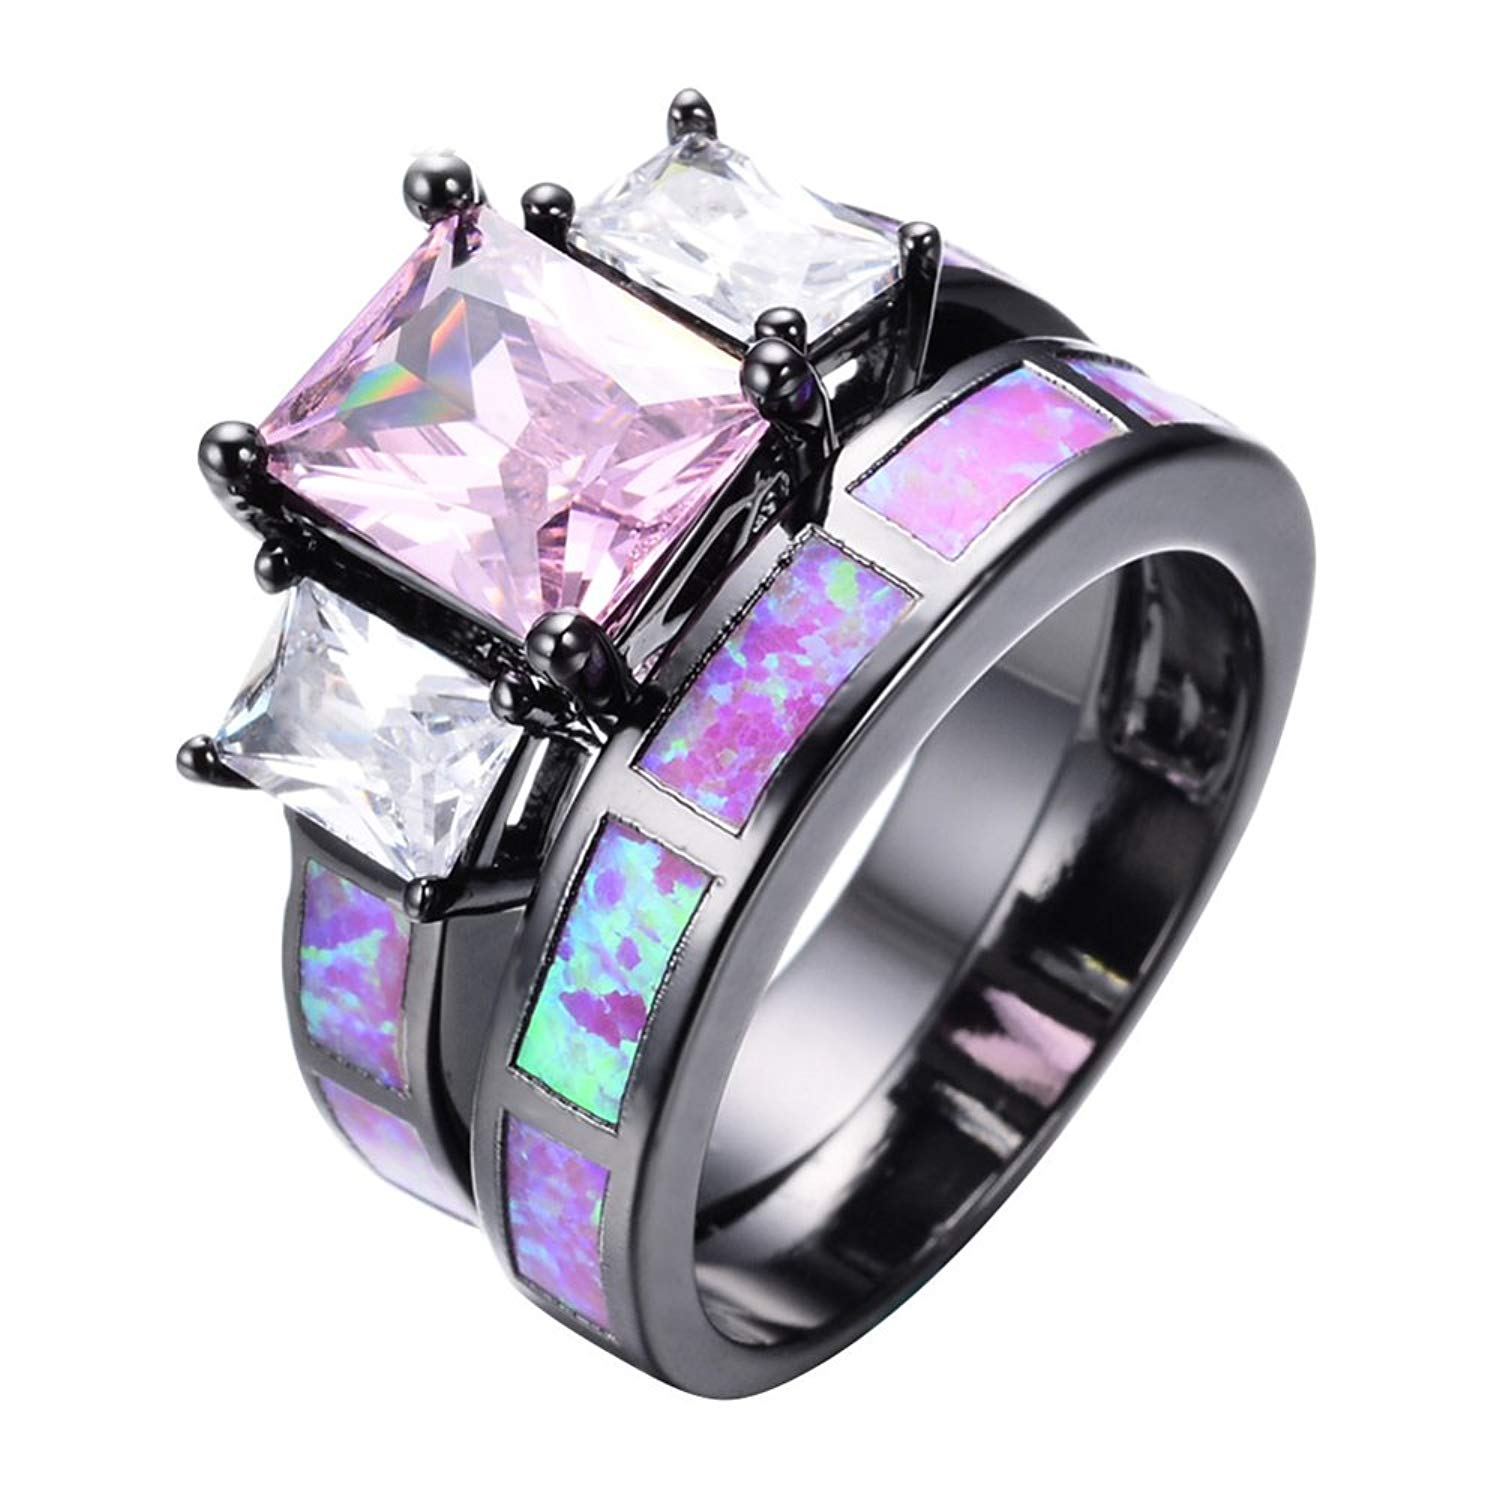 FR/&T ring Green Fire Opal Emerald Jewelry Ring For Women Engagement Wedding Bridal Rings